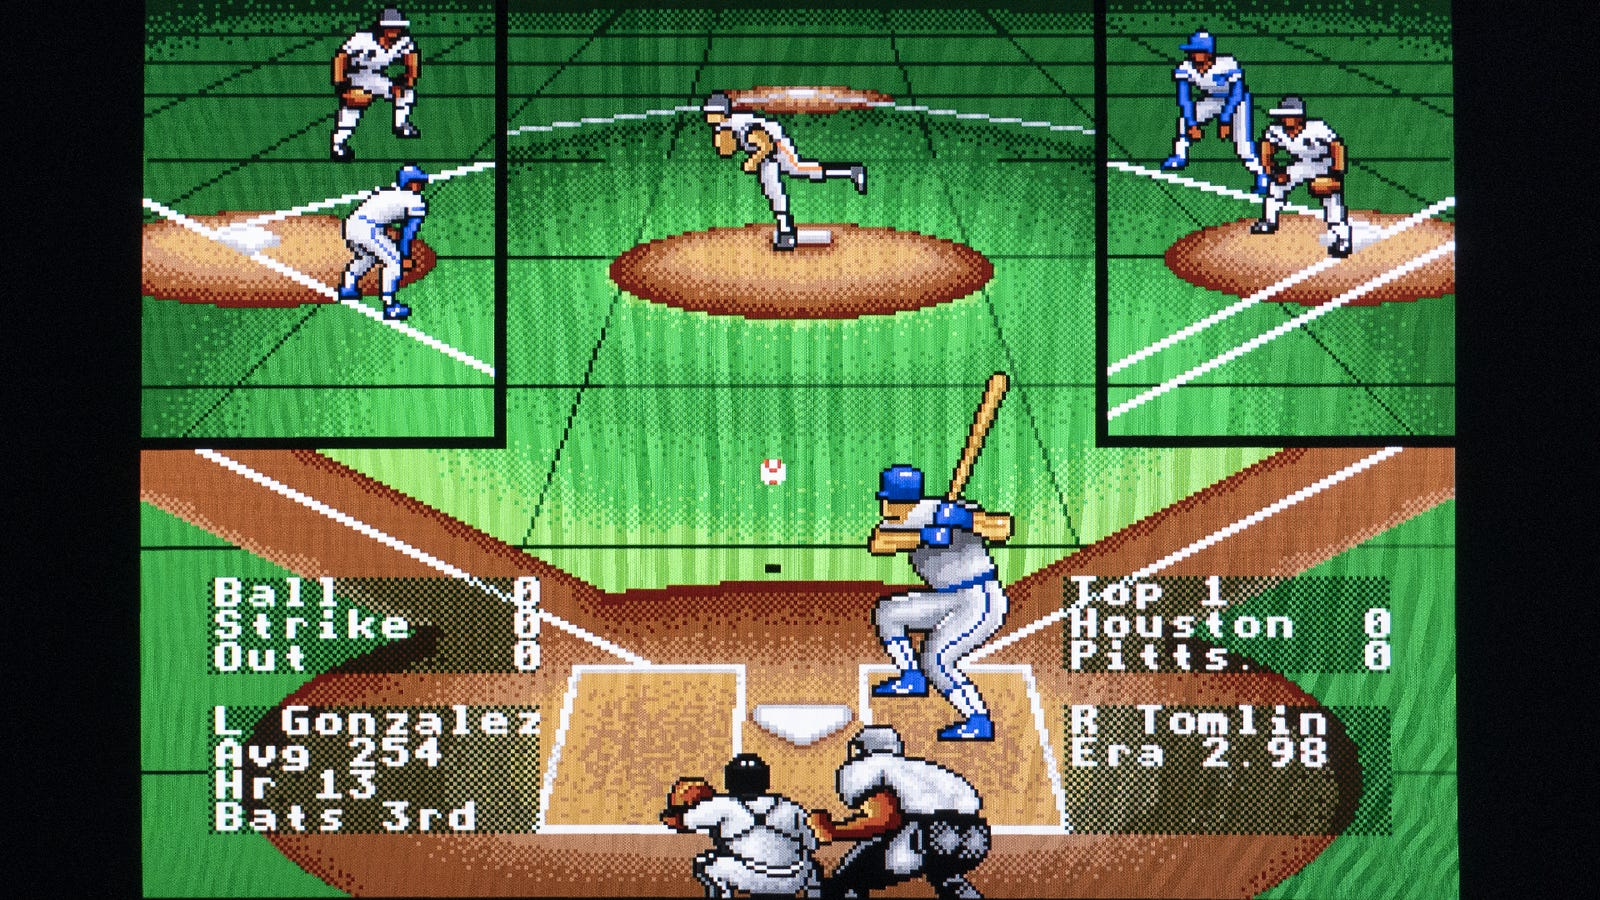 In my later years, I've become obsessed with 16-bit baseball games, and the Mega Sg delivered the best RBI Baseball 4 experiences I've ever had.